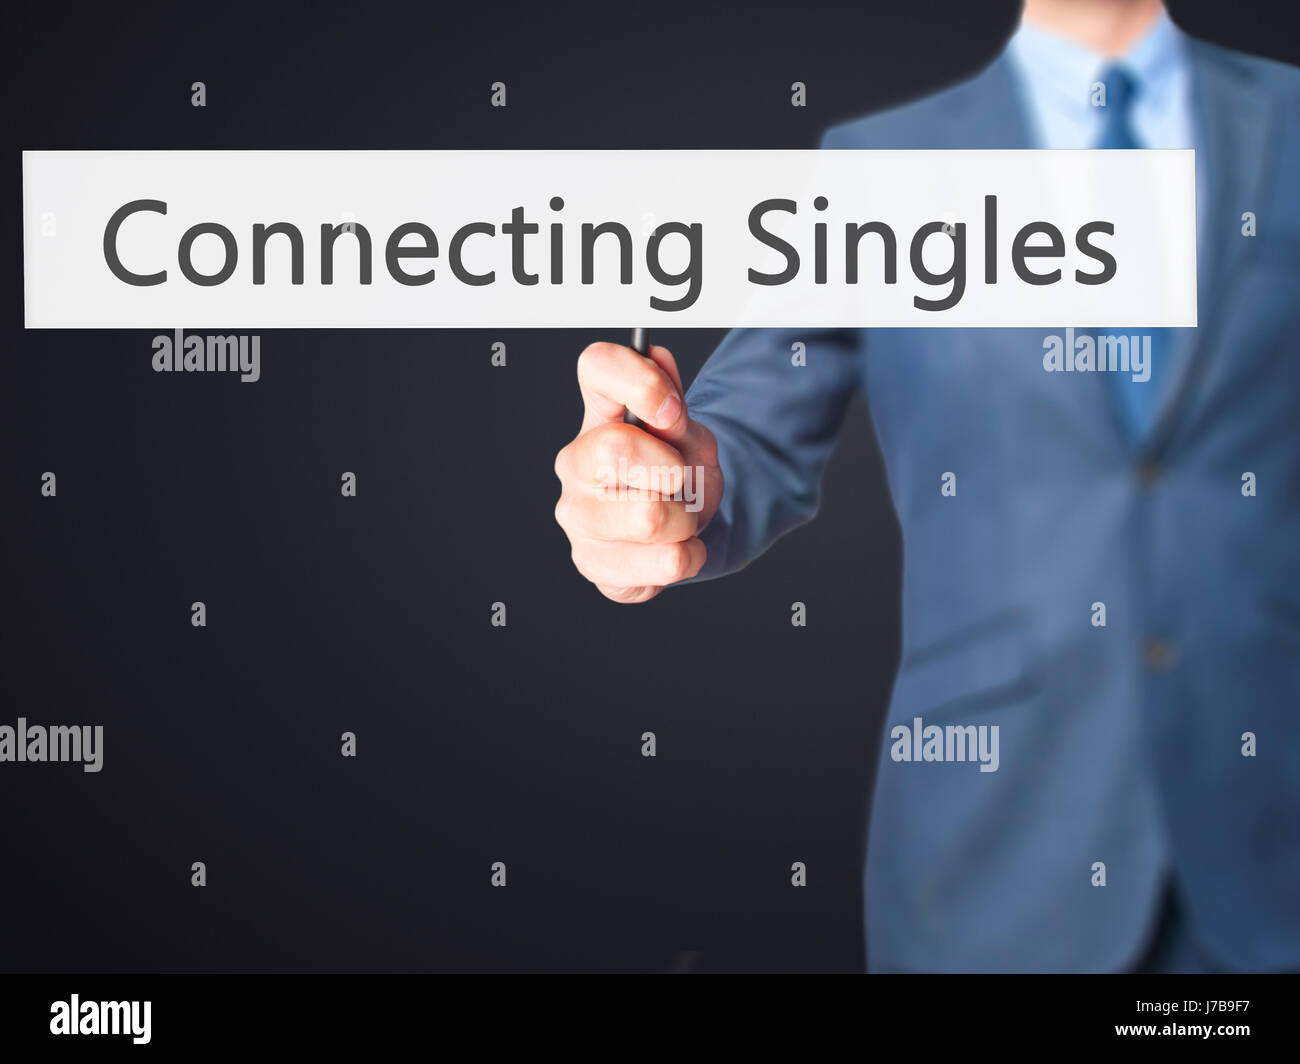 Connecting to singles